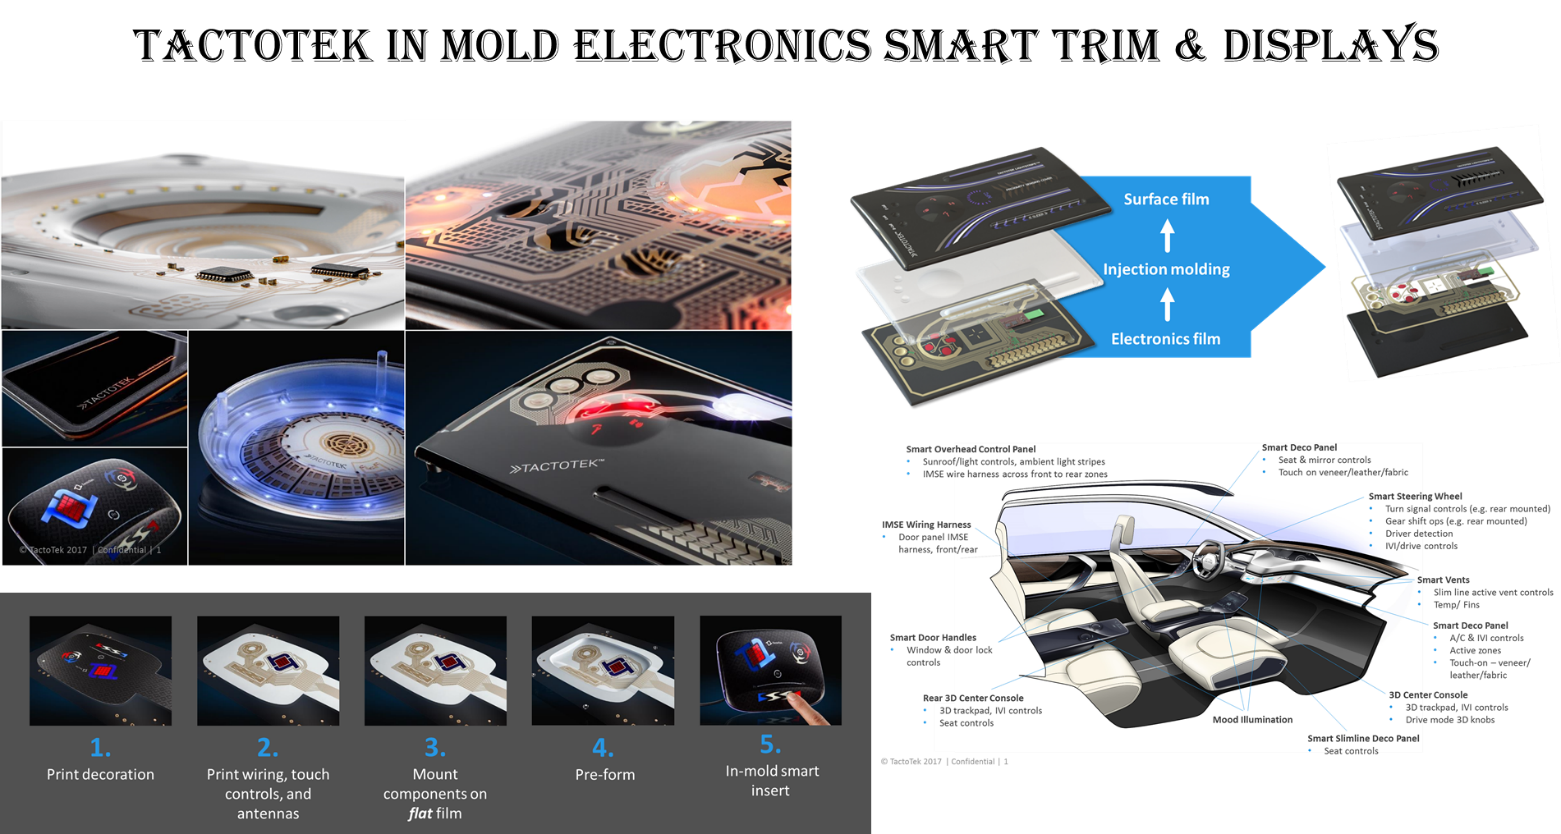 Design Hmi Innovations For Automotive Interiors Movie Wiring Harness Smart Flat Circuits To Reduce Weight And Complexity Is Another Area Of Fast Market Development Companies Like Dupont Already Have A Few Years